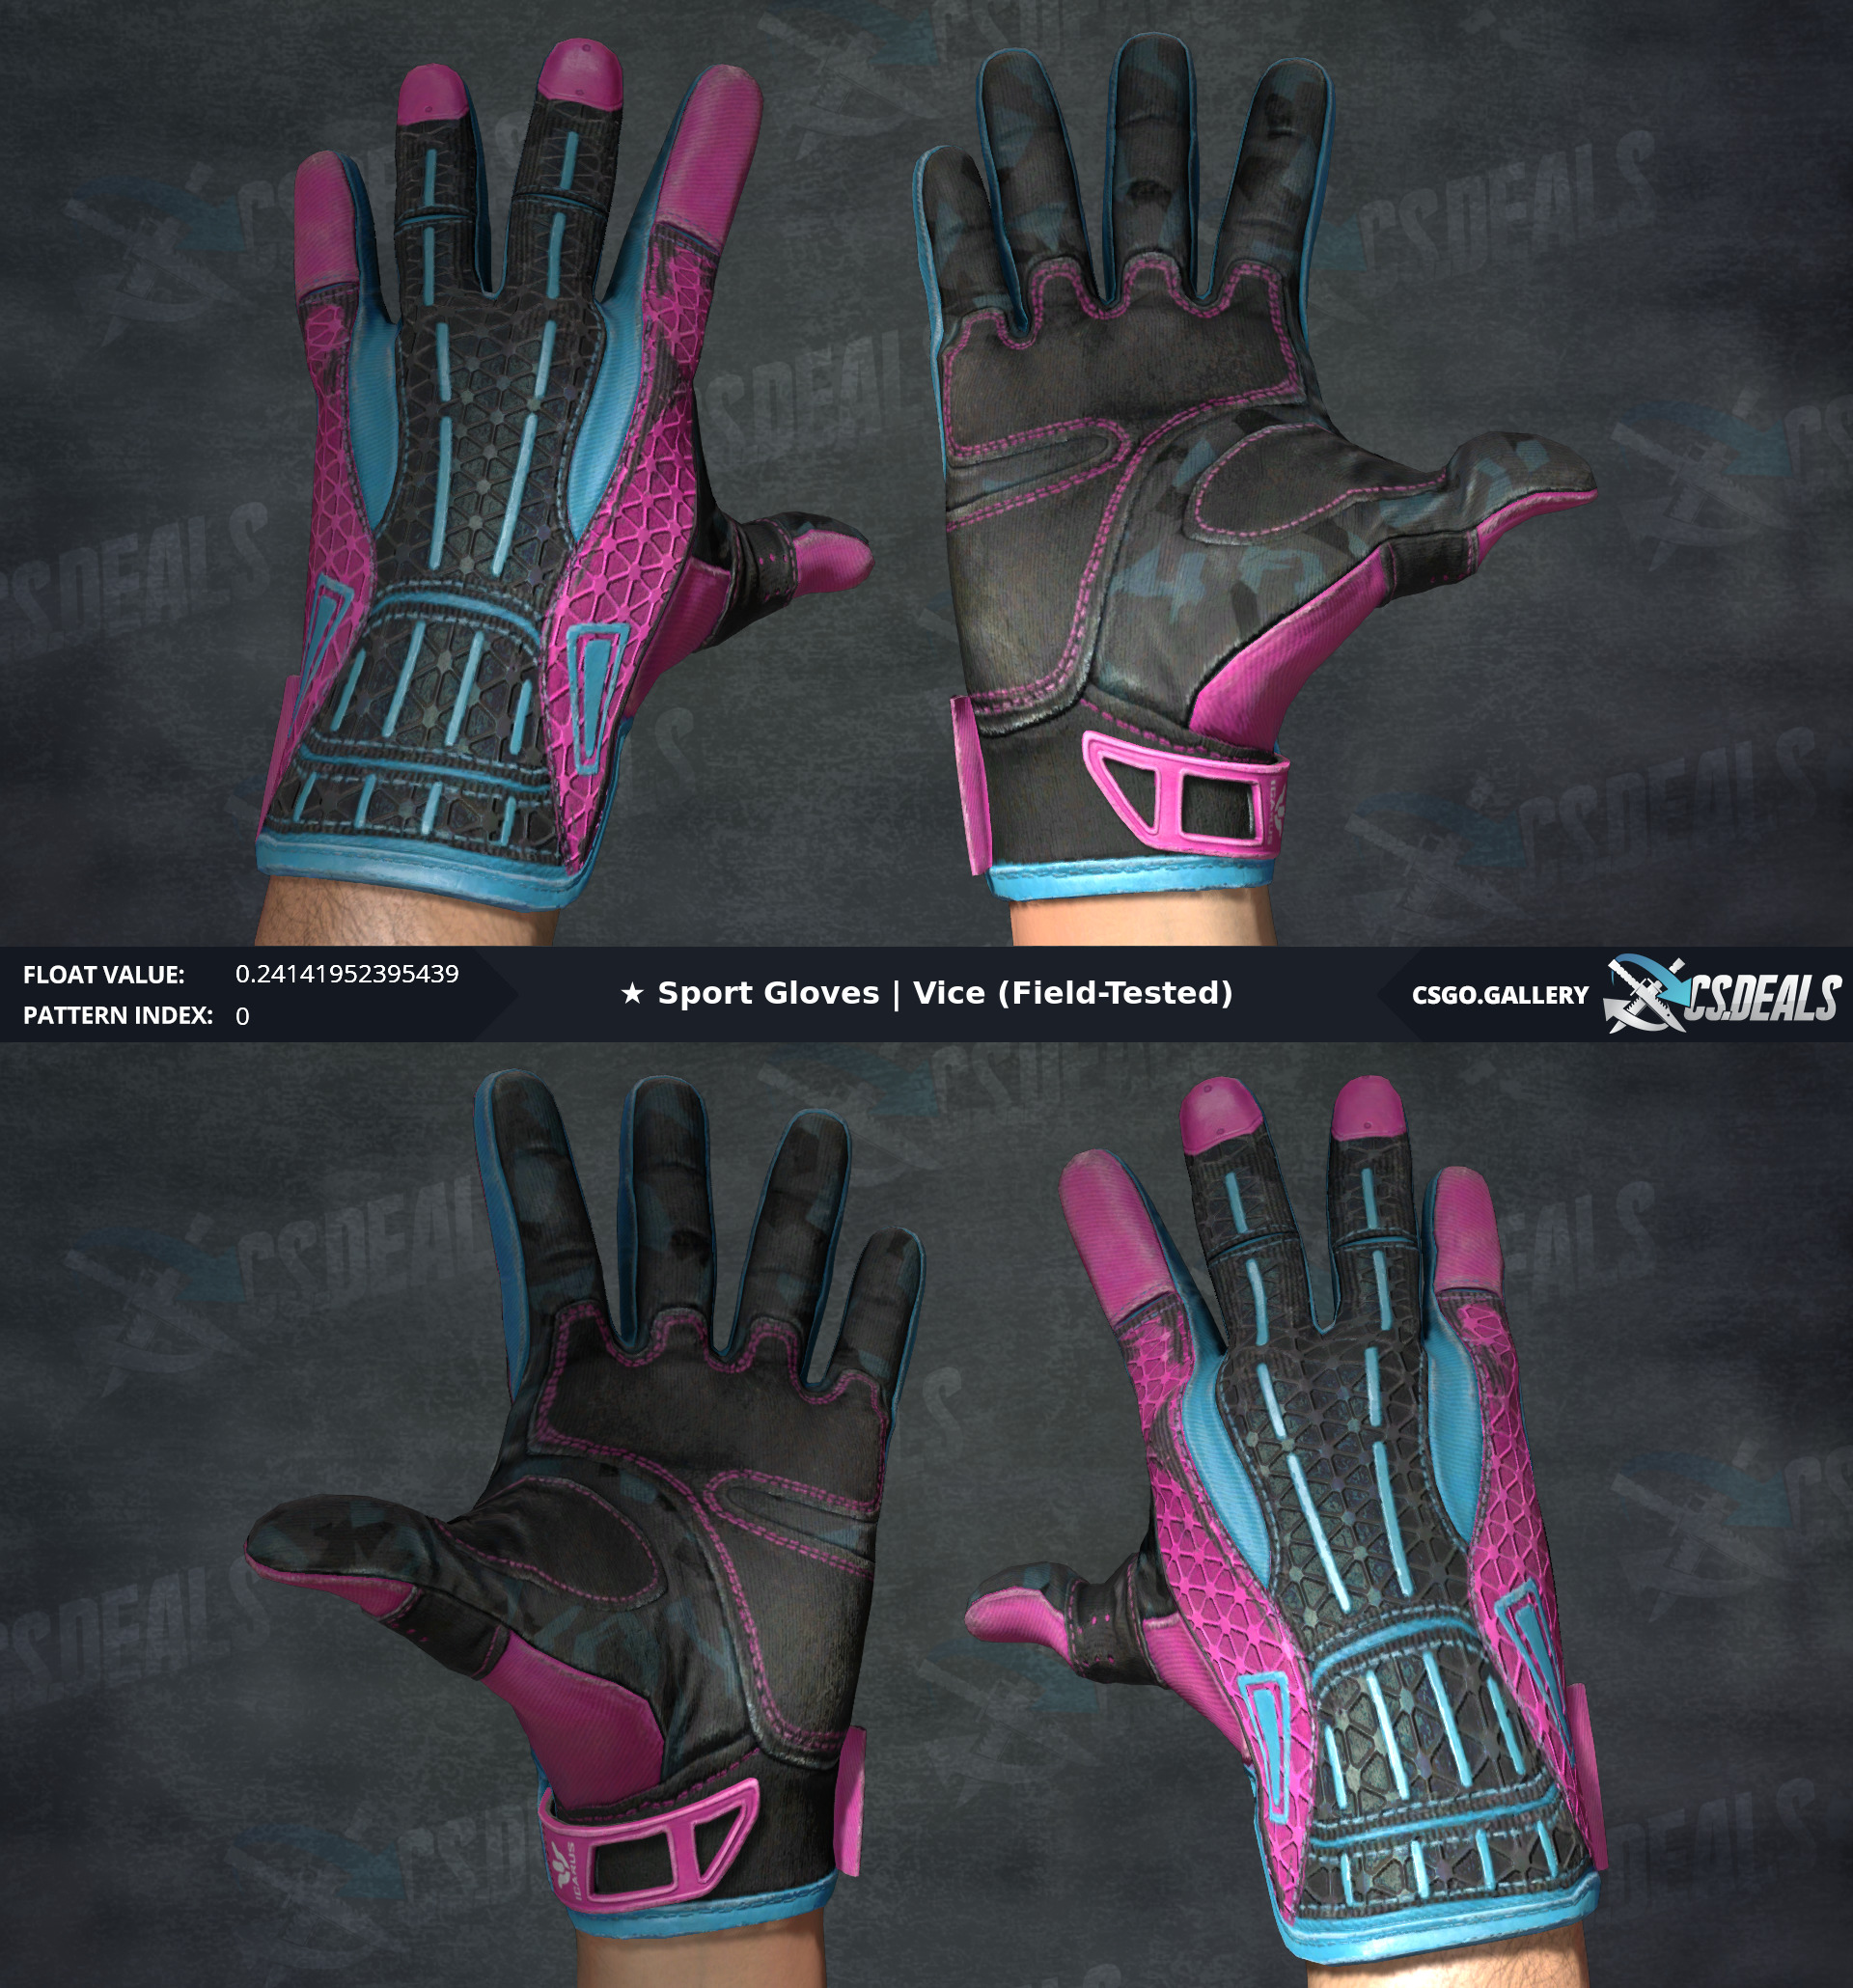 Sport Gloves Vice Opskins: [Store] Bitskins Store: Low Floats, Special Patterns And